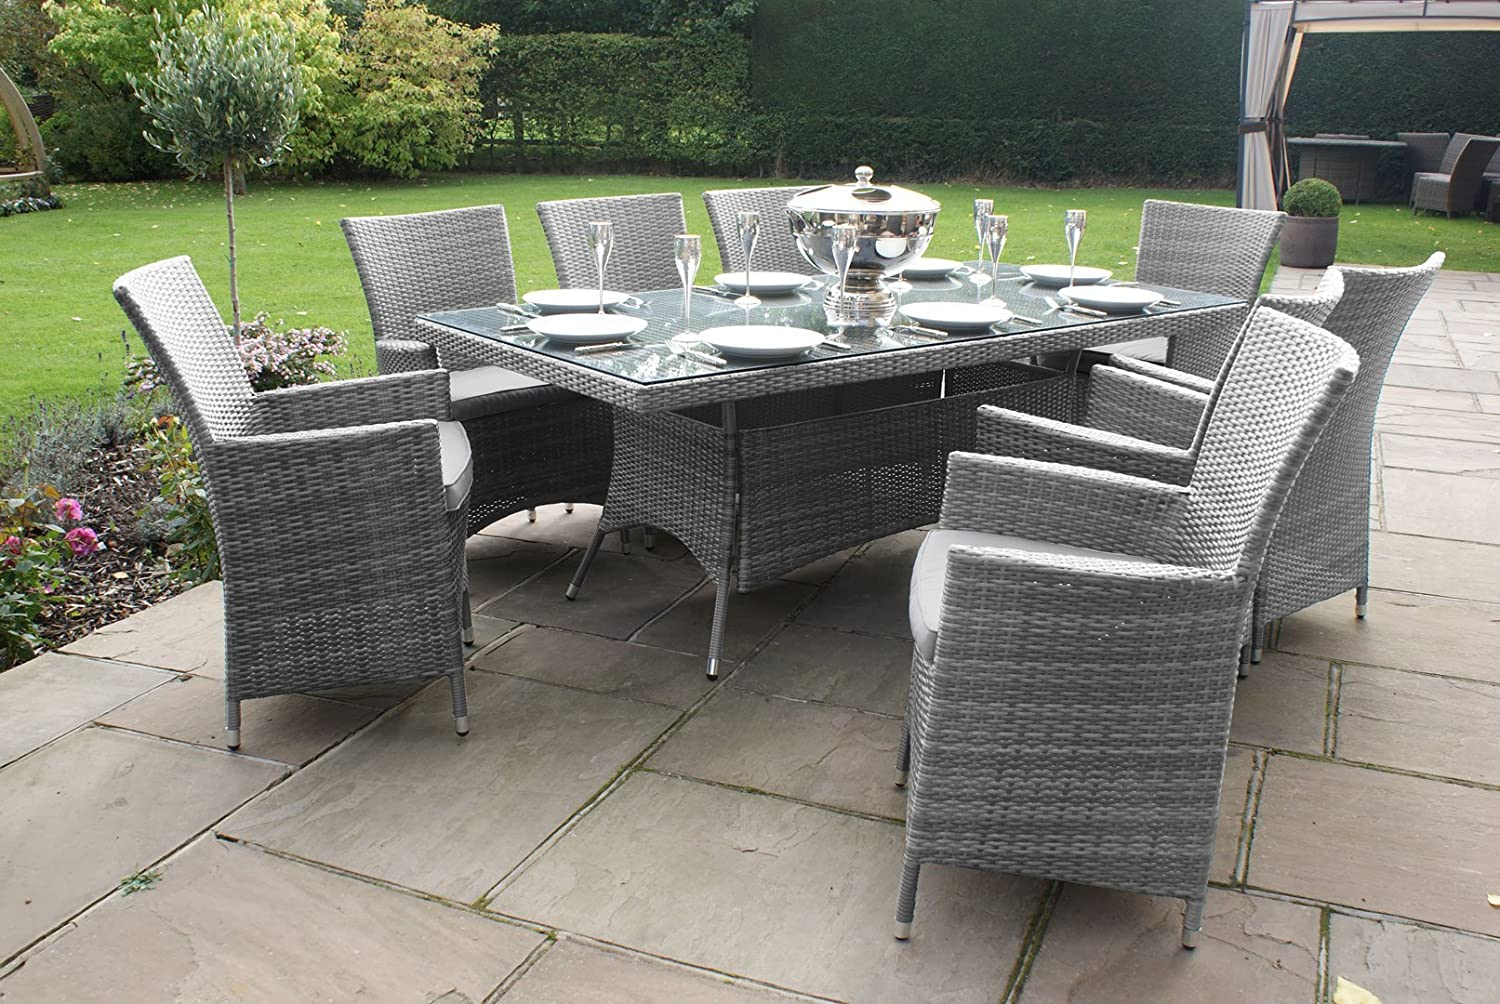 grey rattan dining table. maze rattan la 8 seater rectangular garden furniture dining set - grey inc free parasol: amazon.co.uk: kitchen \u0026 home table